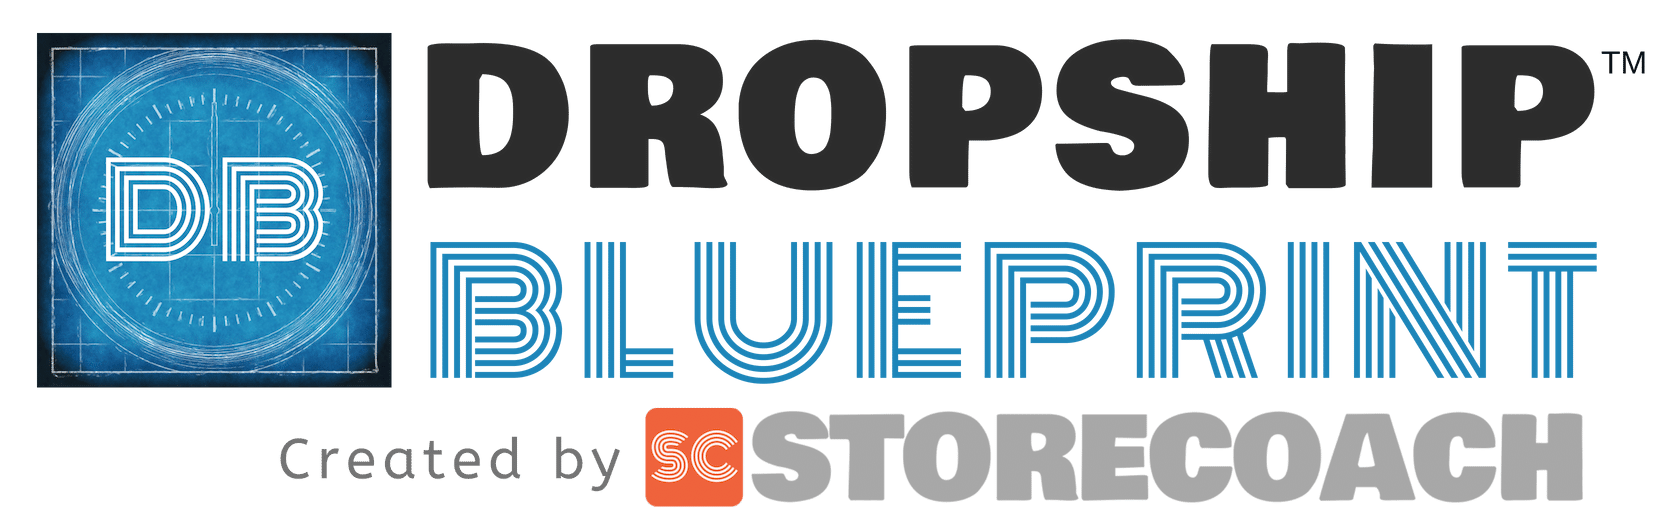 Dropship Blueprint: Start a Dropship Business